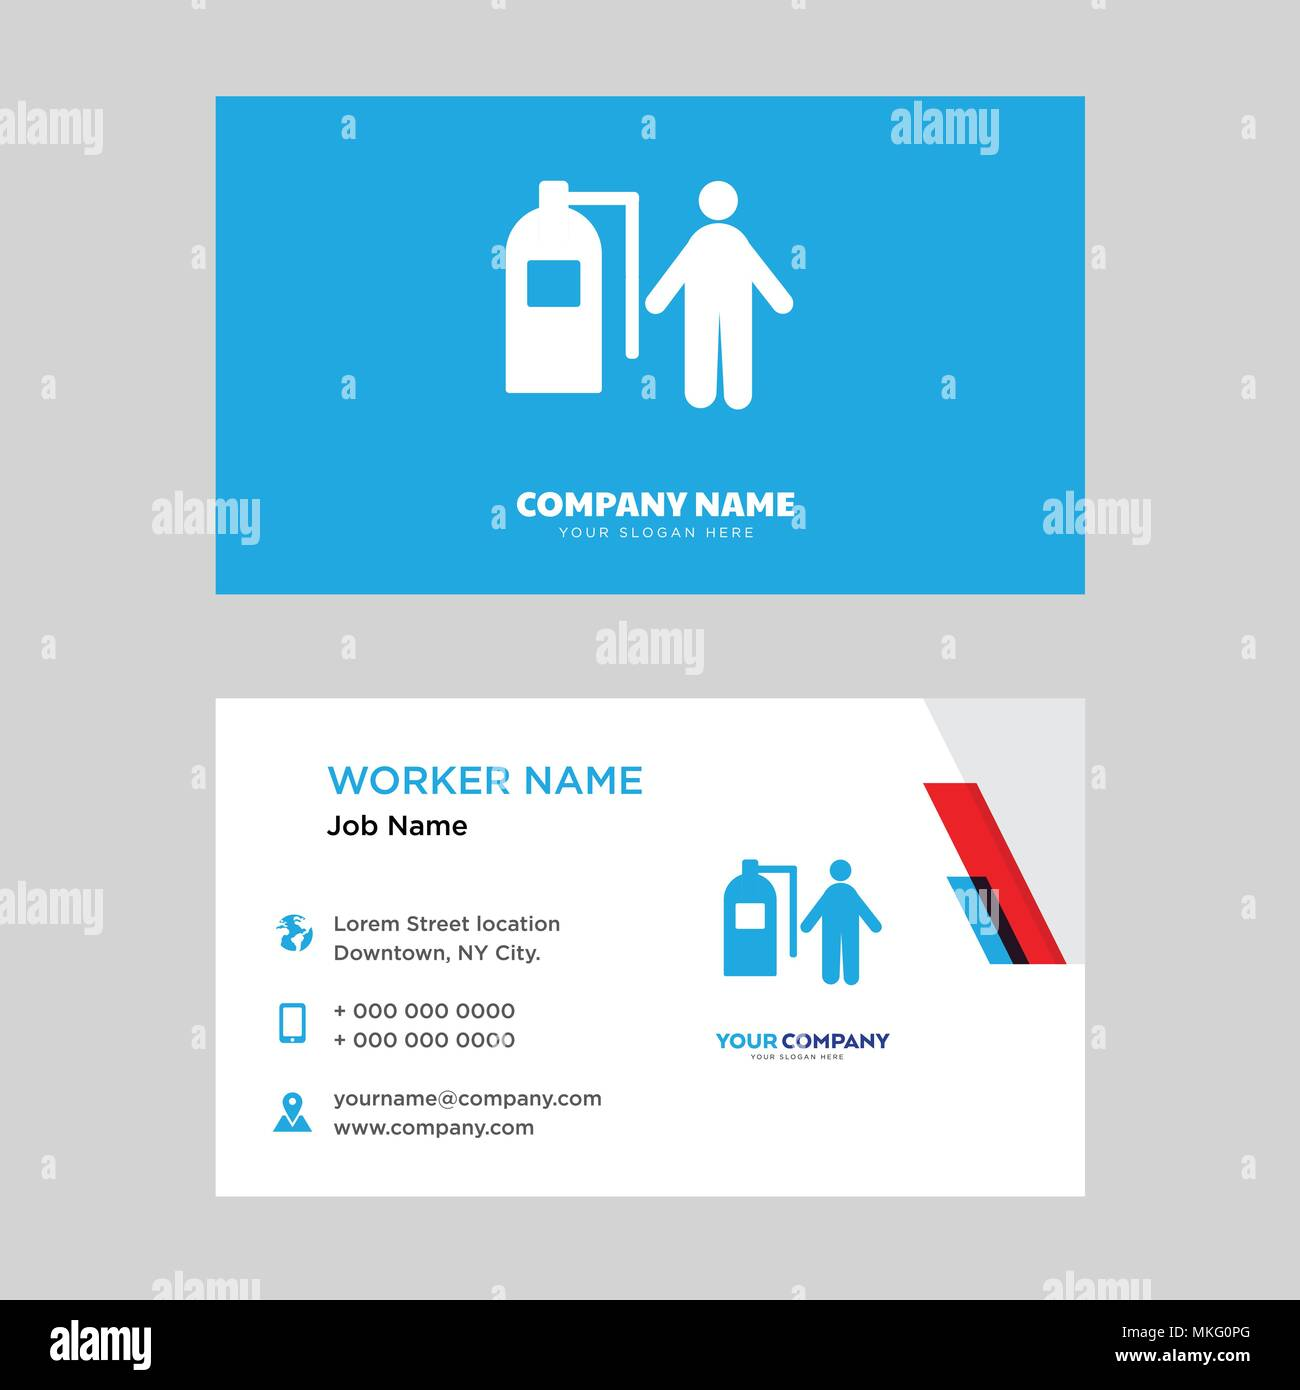 Firefighter Business Card Design Template Visiting For Your Company